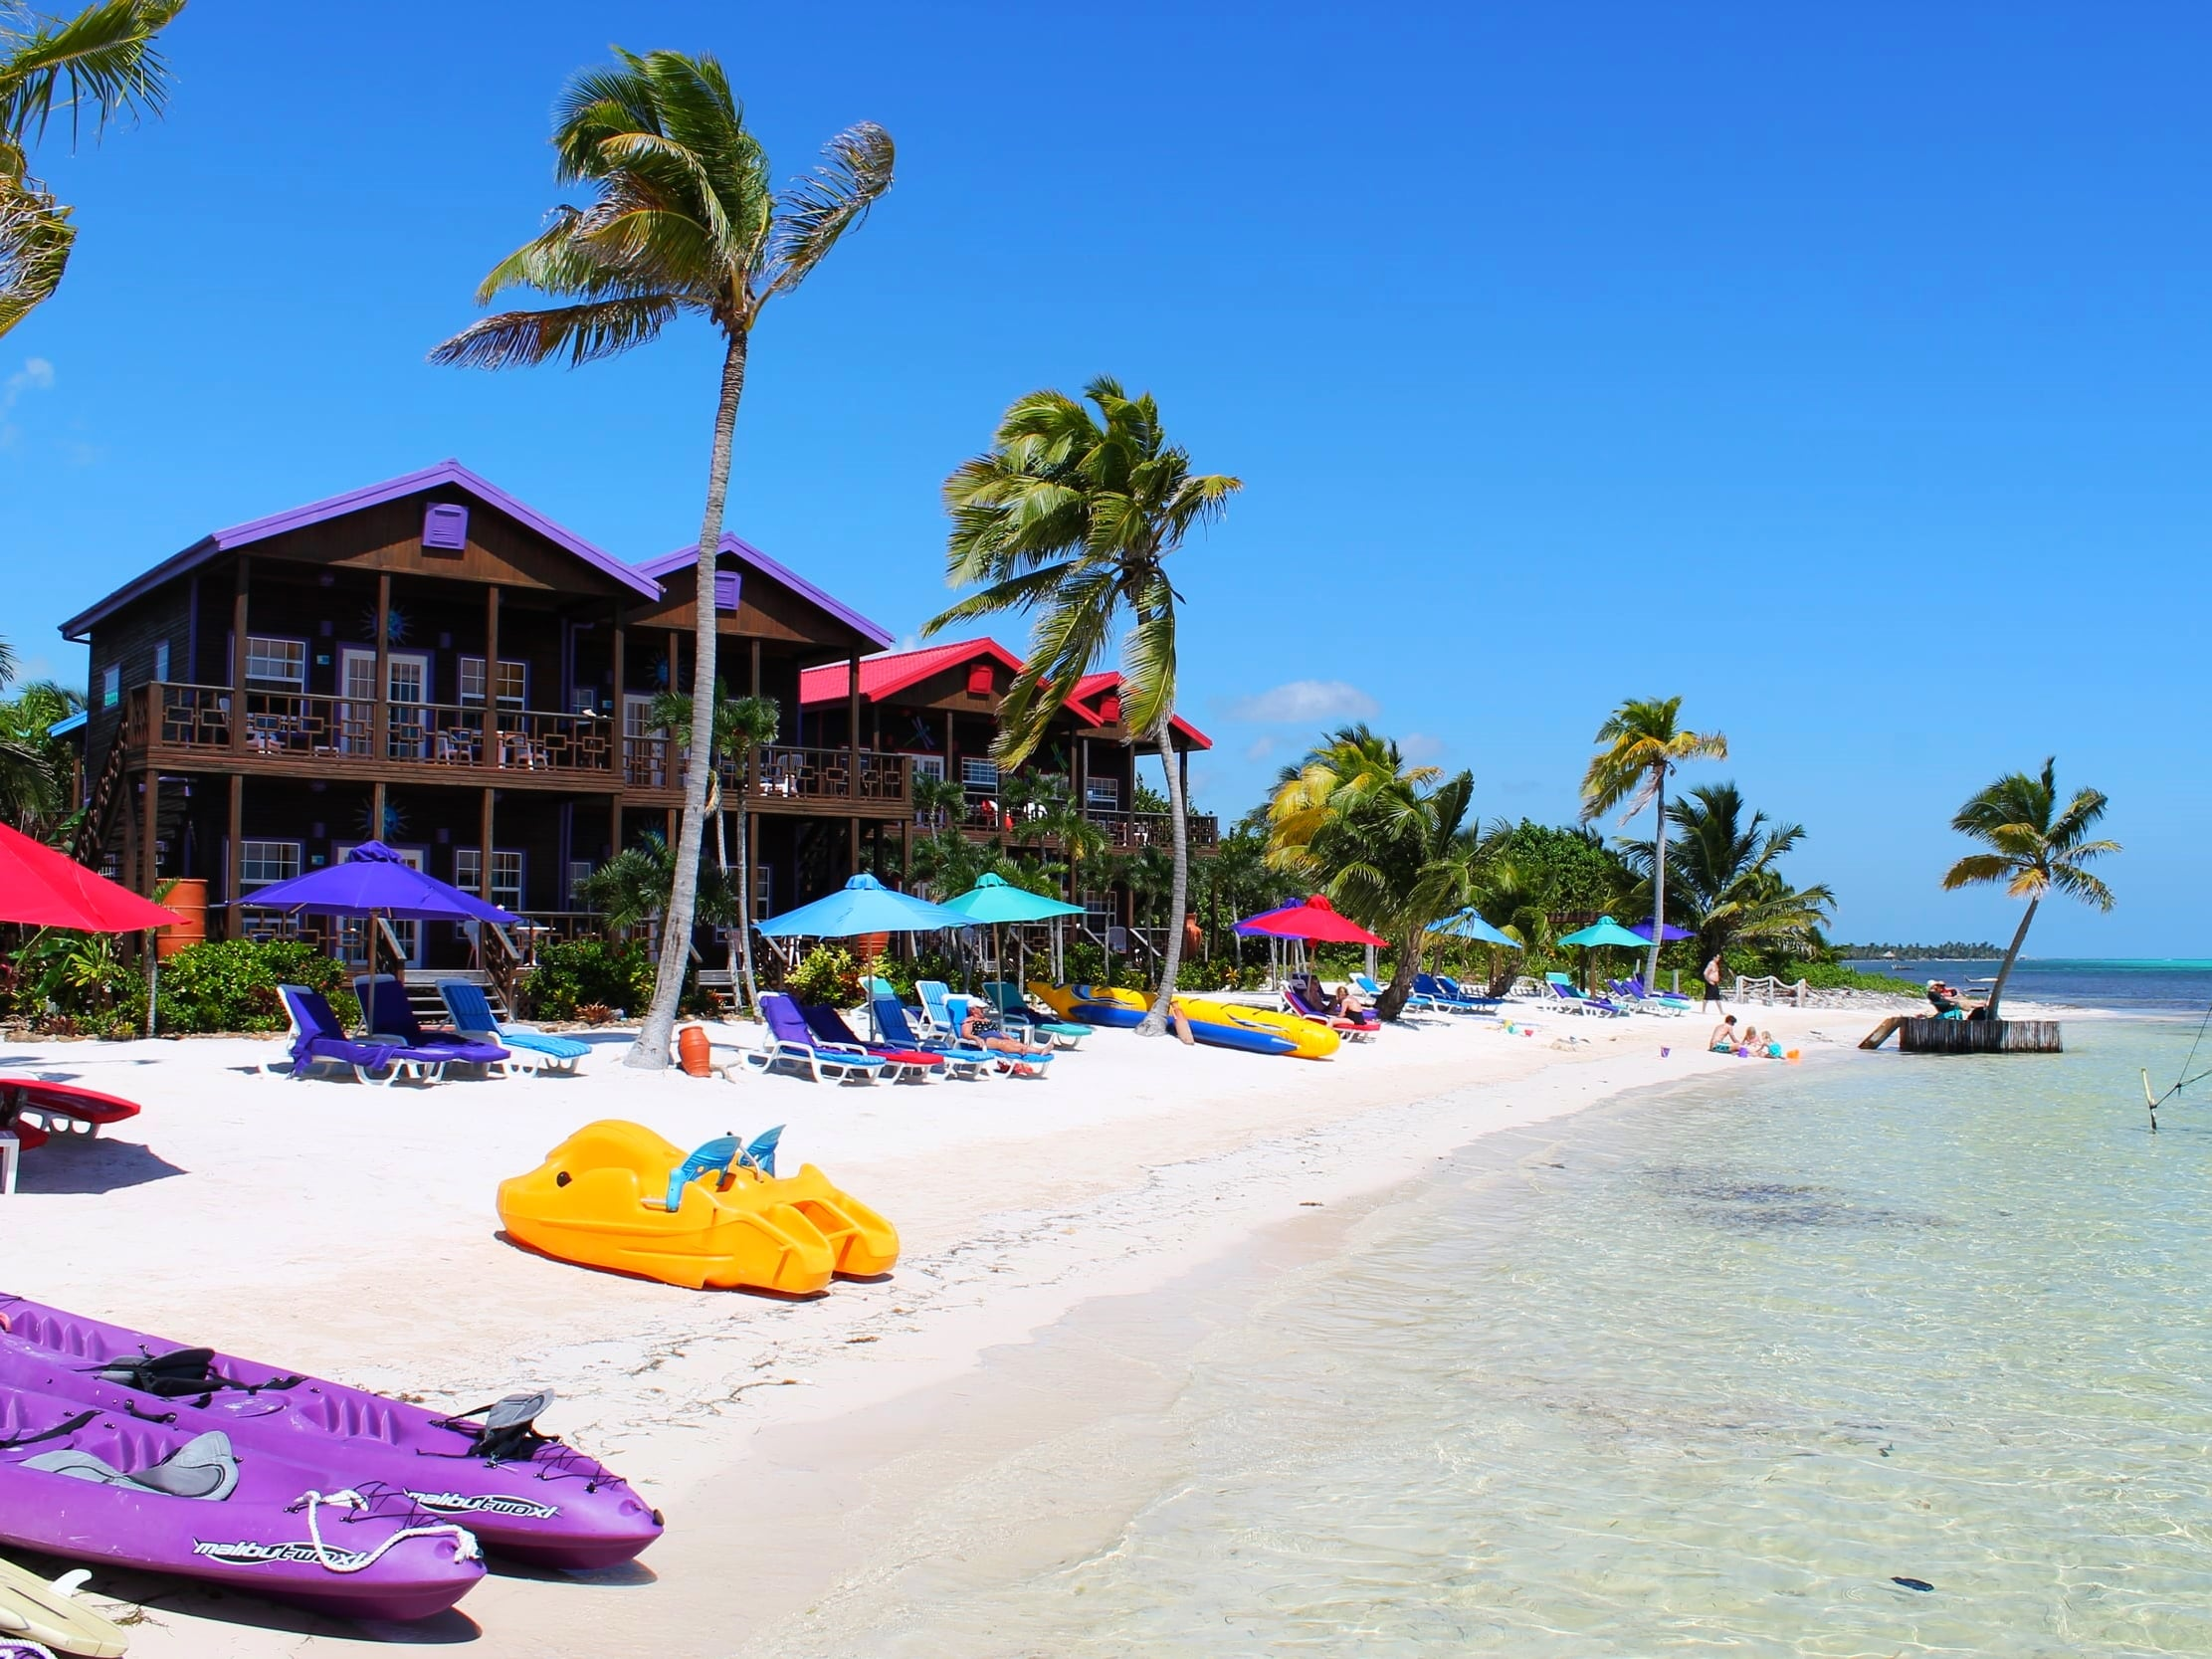 X'tan Ha Beach Resort, Ambergris Caye, Belize